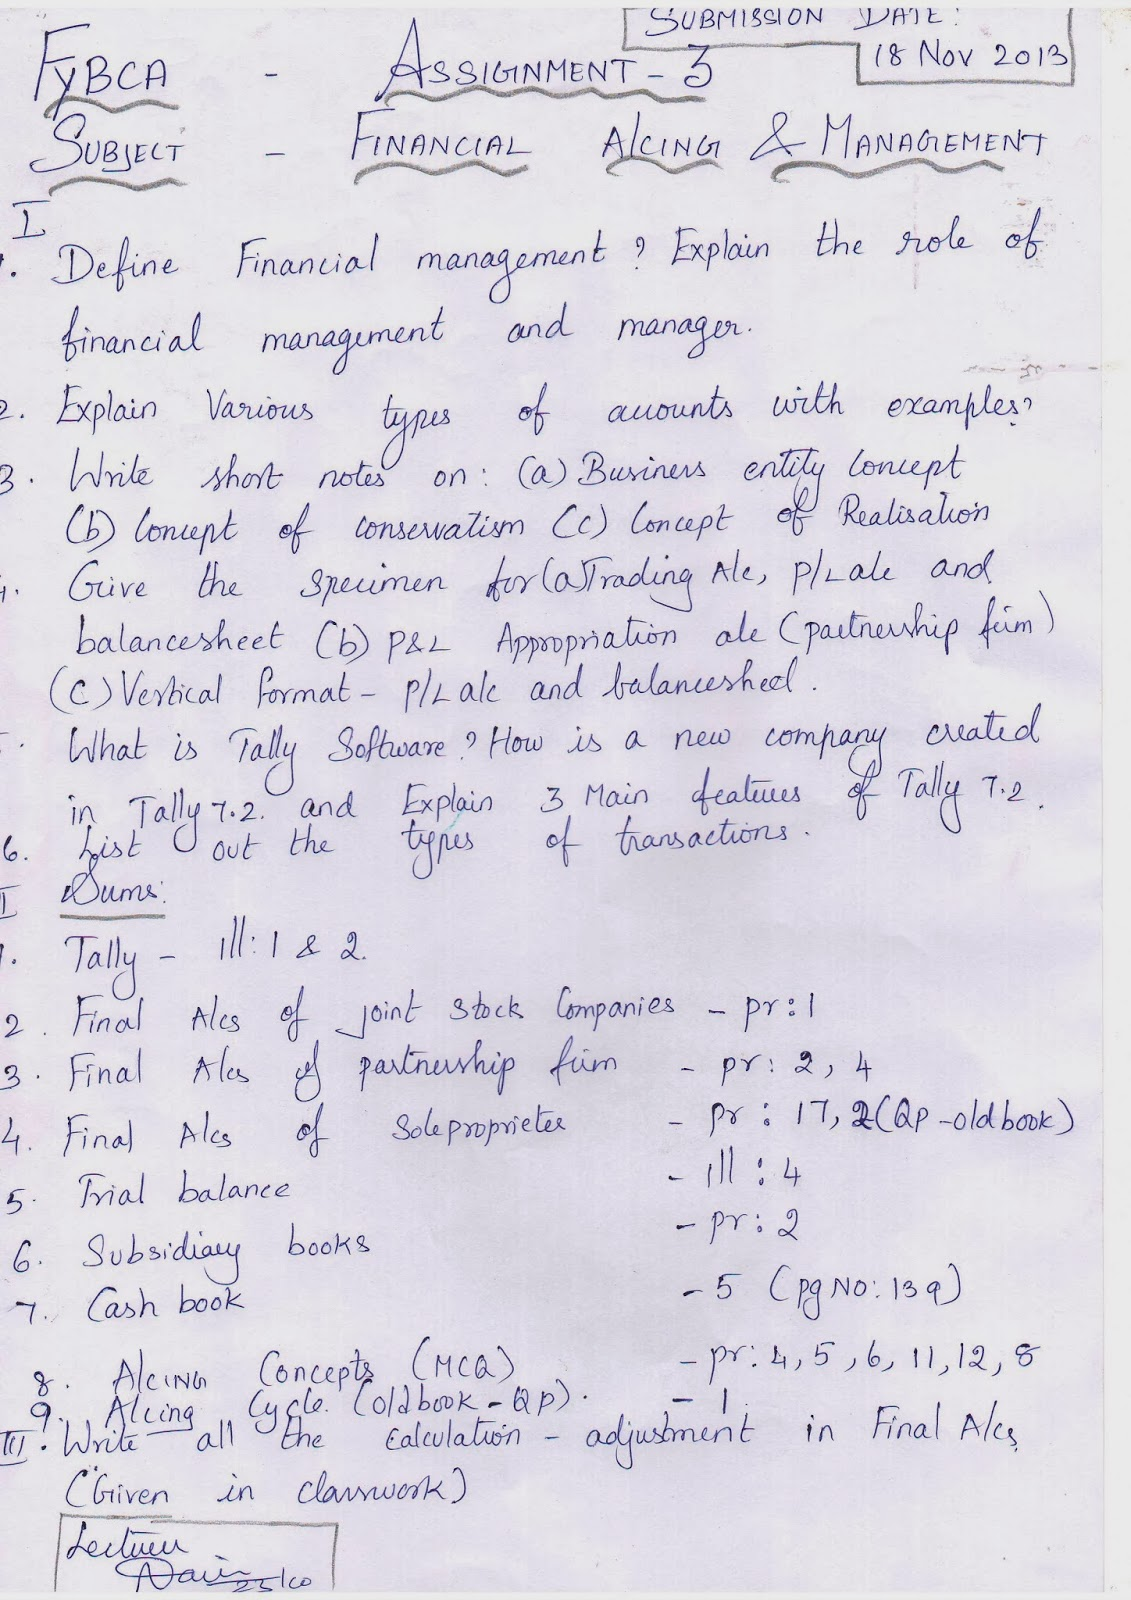 dnv fy bca bca  financial accounting and management 4 old question papers dropbox com s zq7qzxrp6zmhcvx bca103 fam i dec 2012 pdf